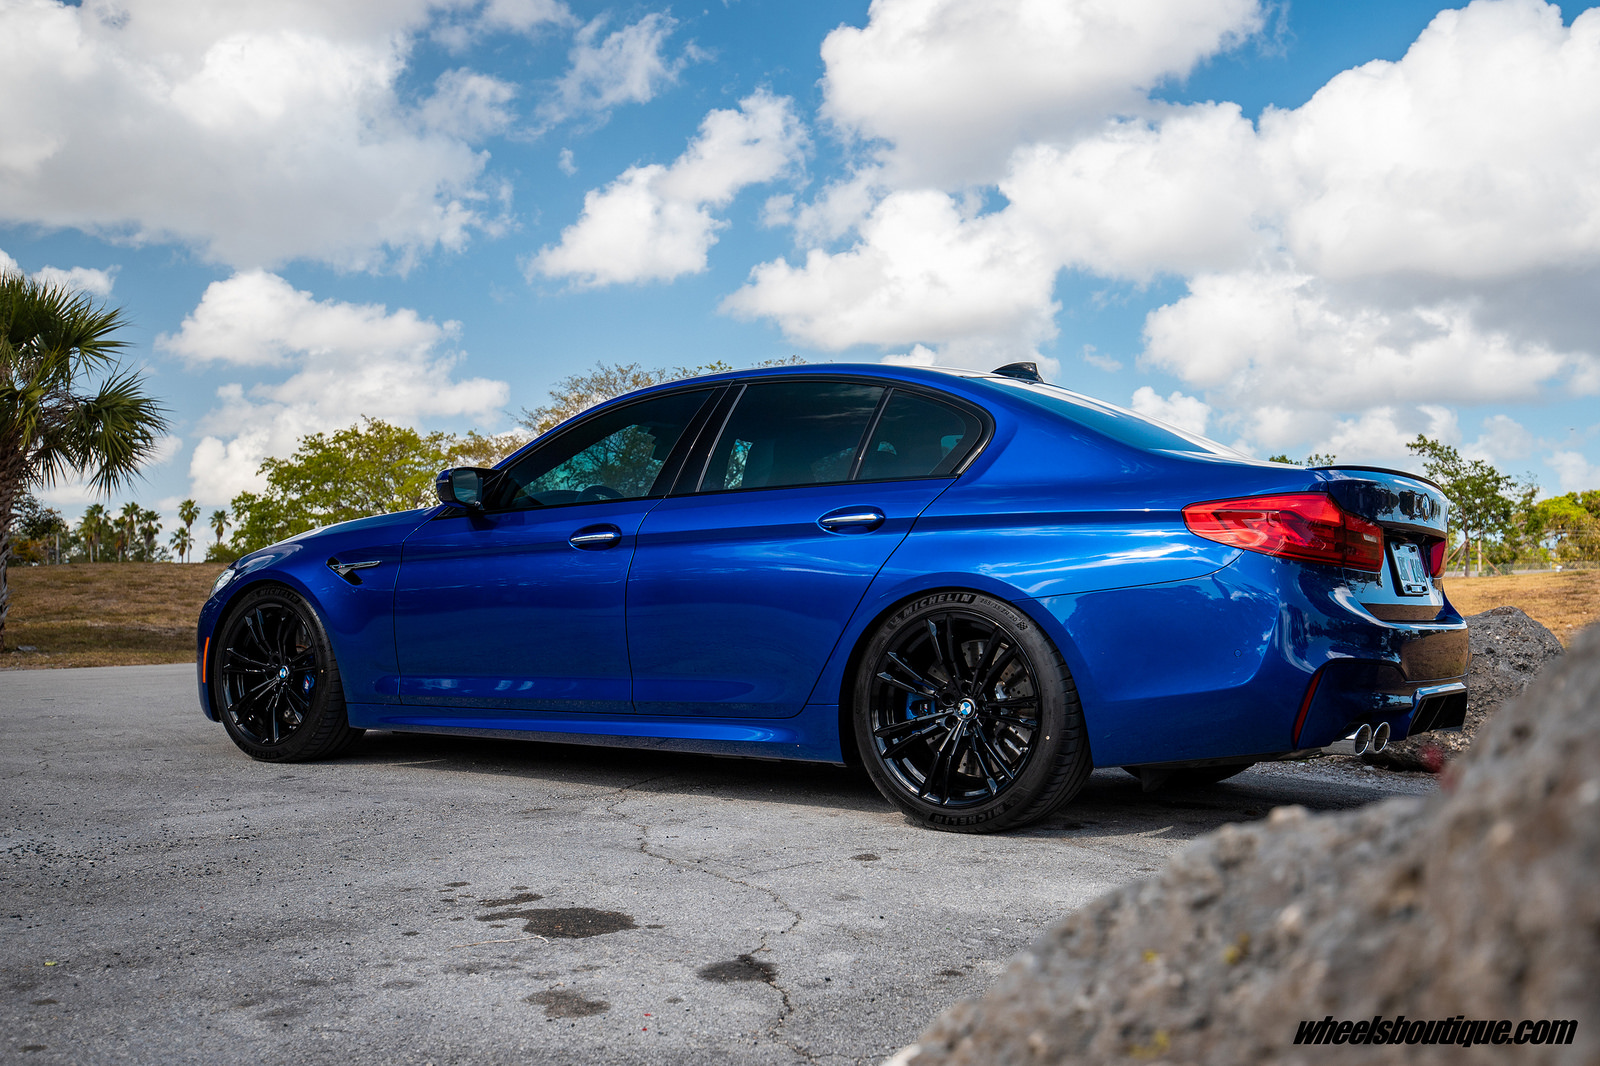 Have You Seen The New F90 M5 Lowered Yet You Have Now A